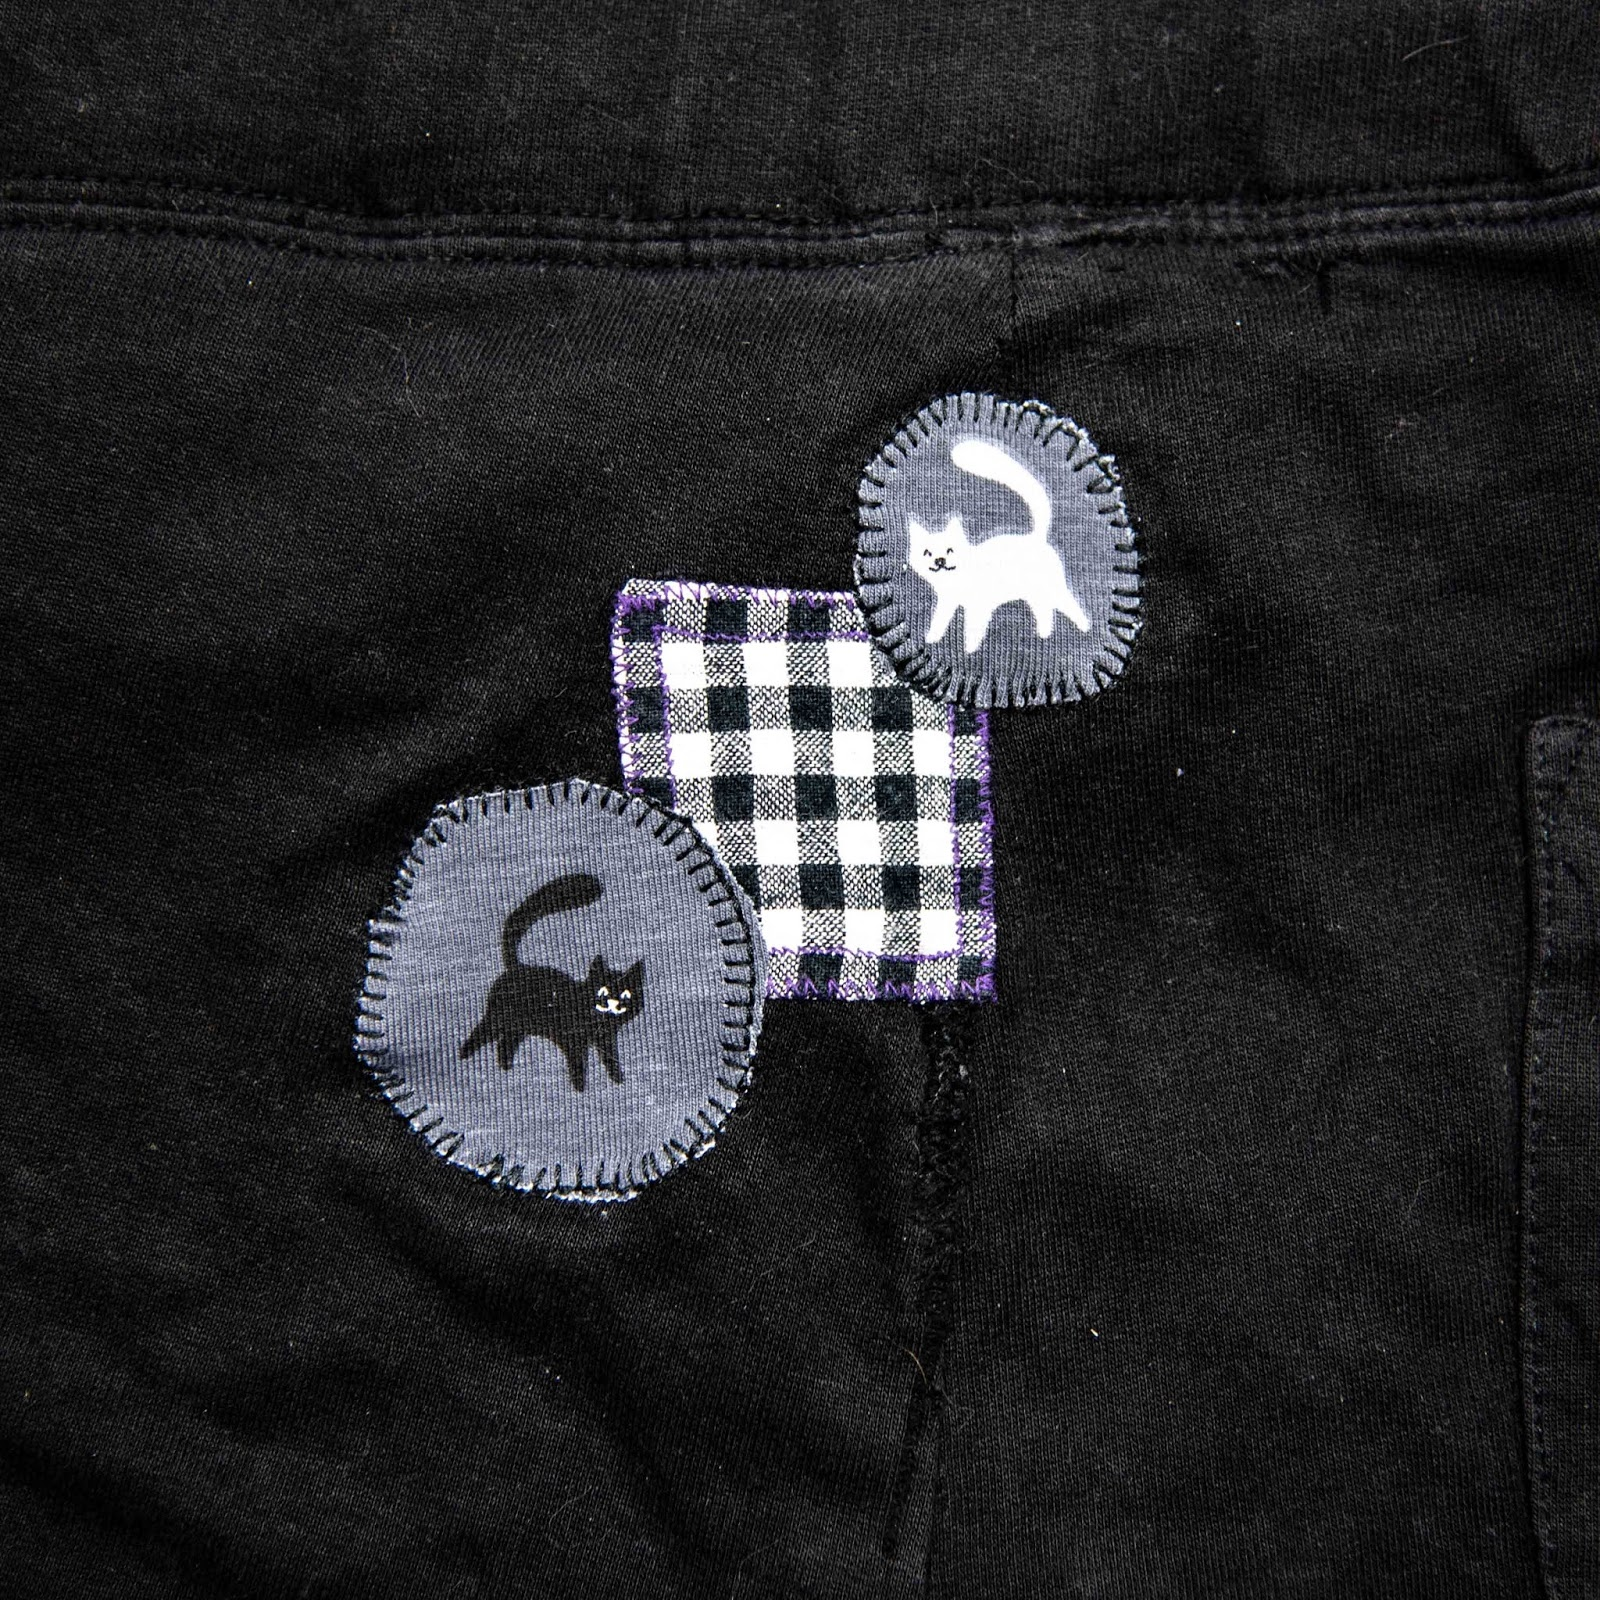 faulty fashion pants holes cover selfmade patches sewing diy repair